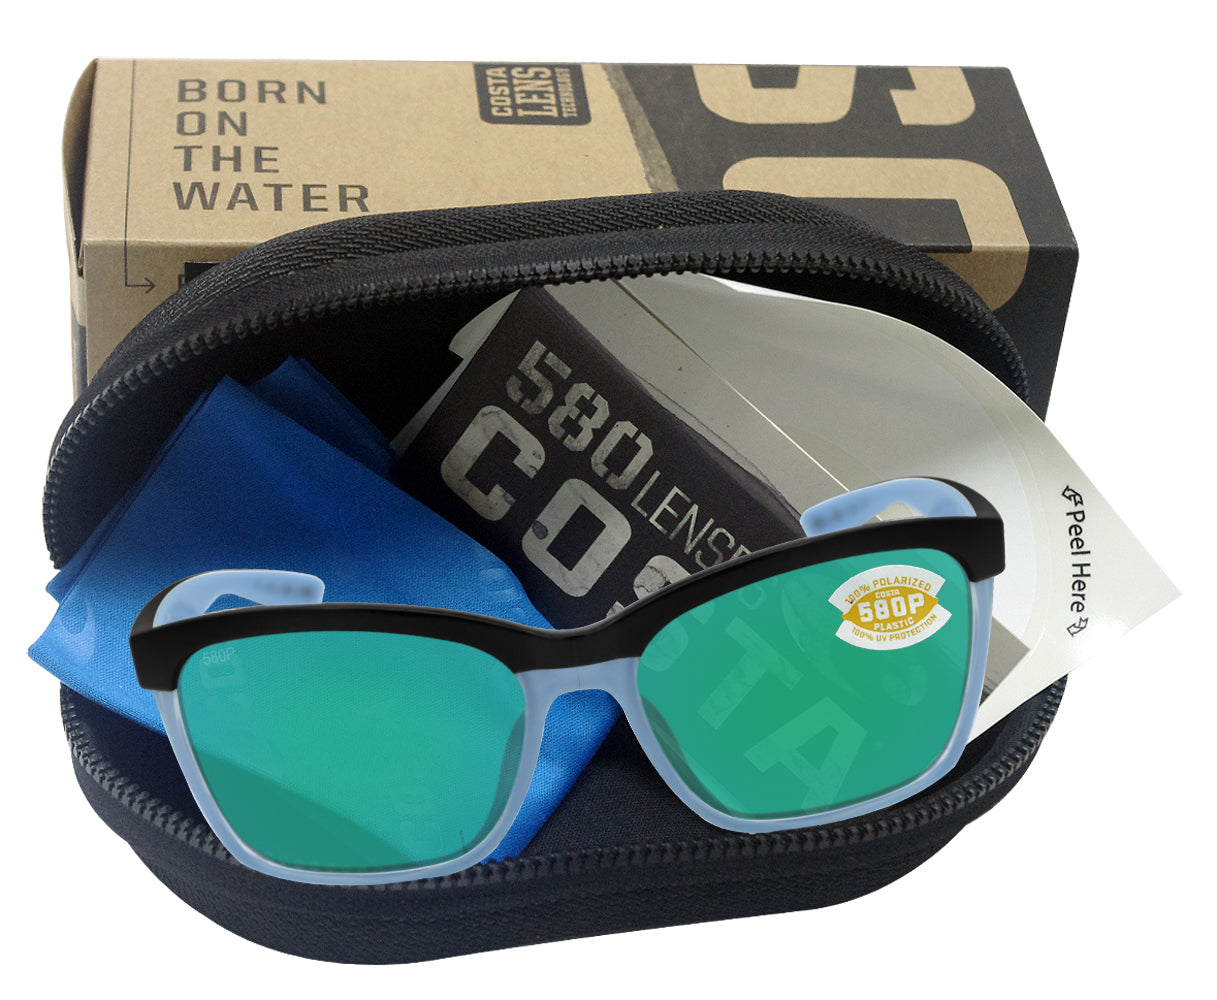 Costa Del Mar Anaa Sunglasses-Black Crystal Lt Blue Frame//Green Mirror 580P Lens